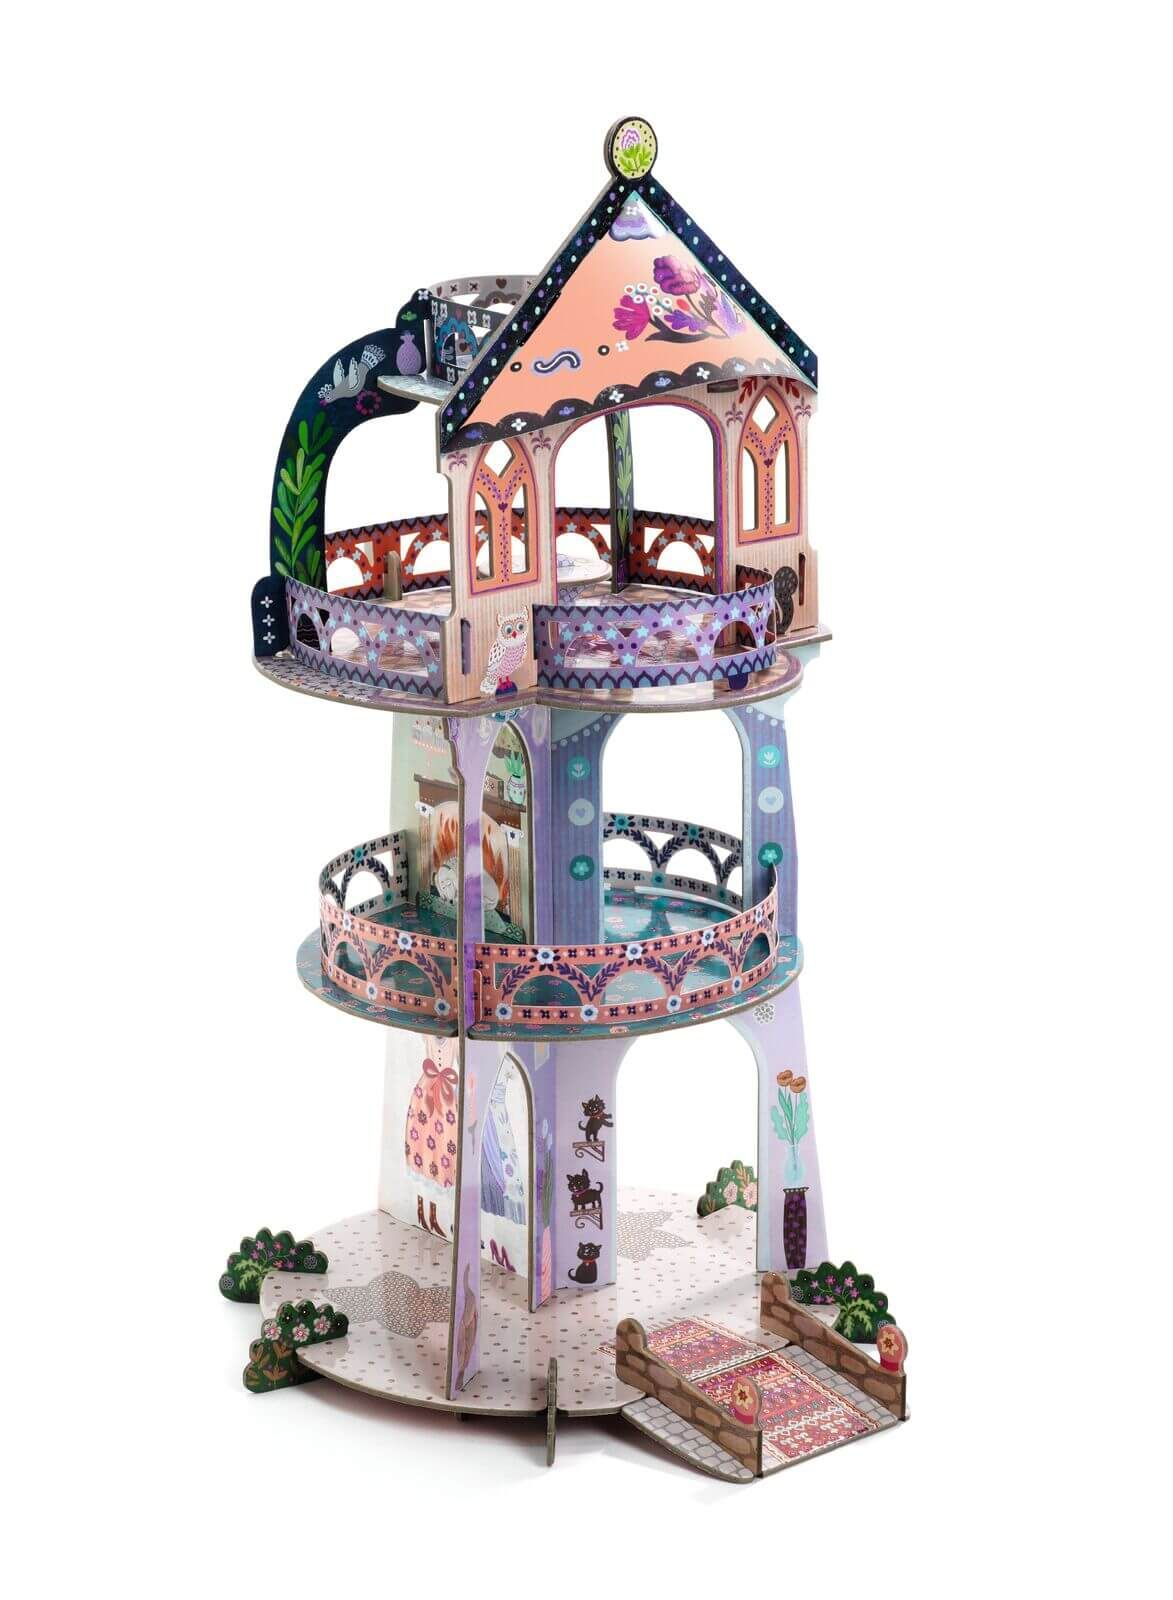 Djeco pop to play Tower of wonders Wooden toy shop, Pop